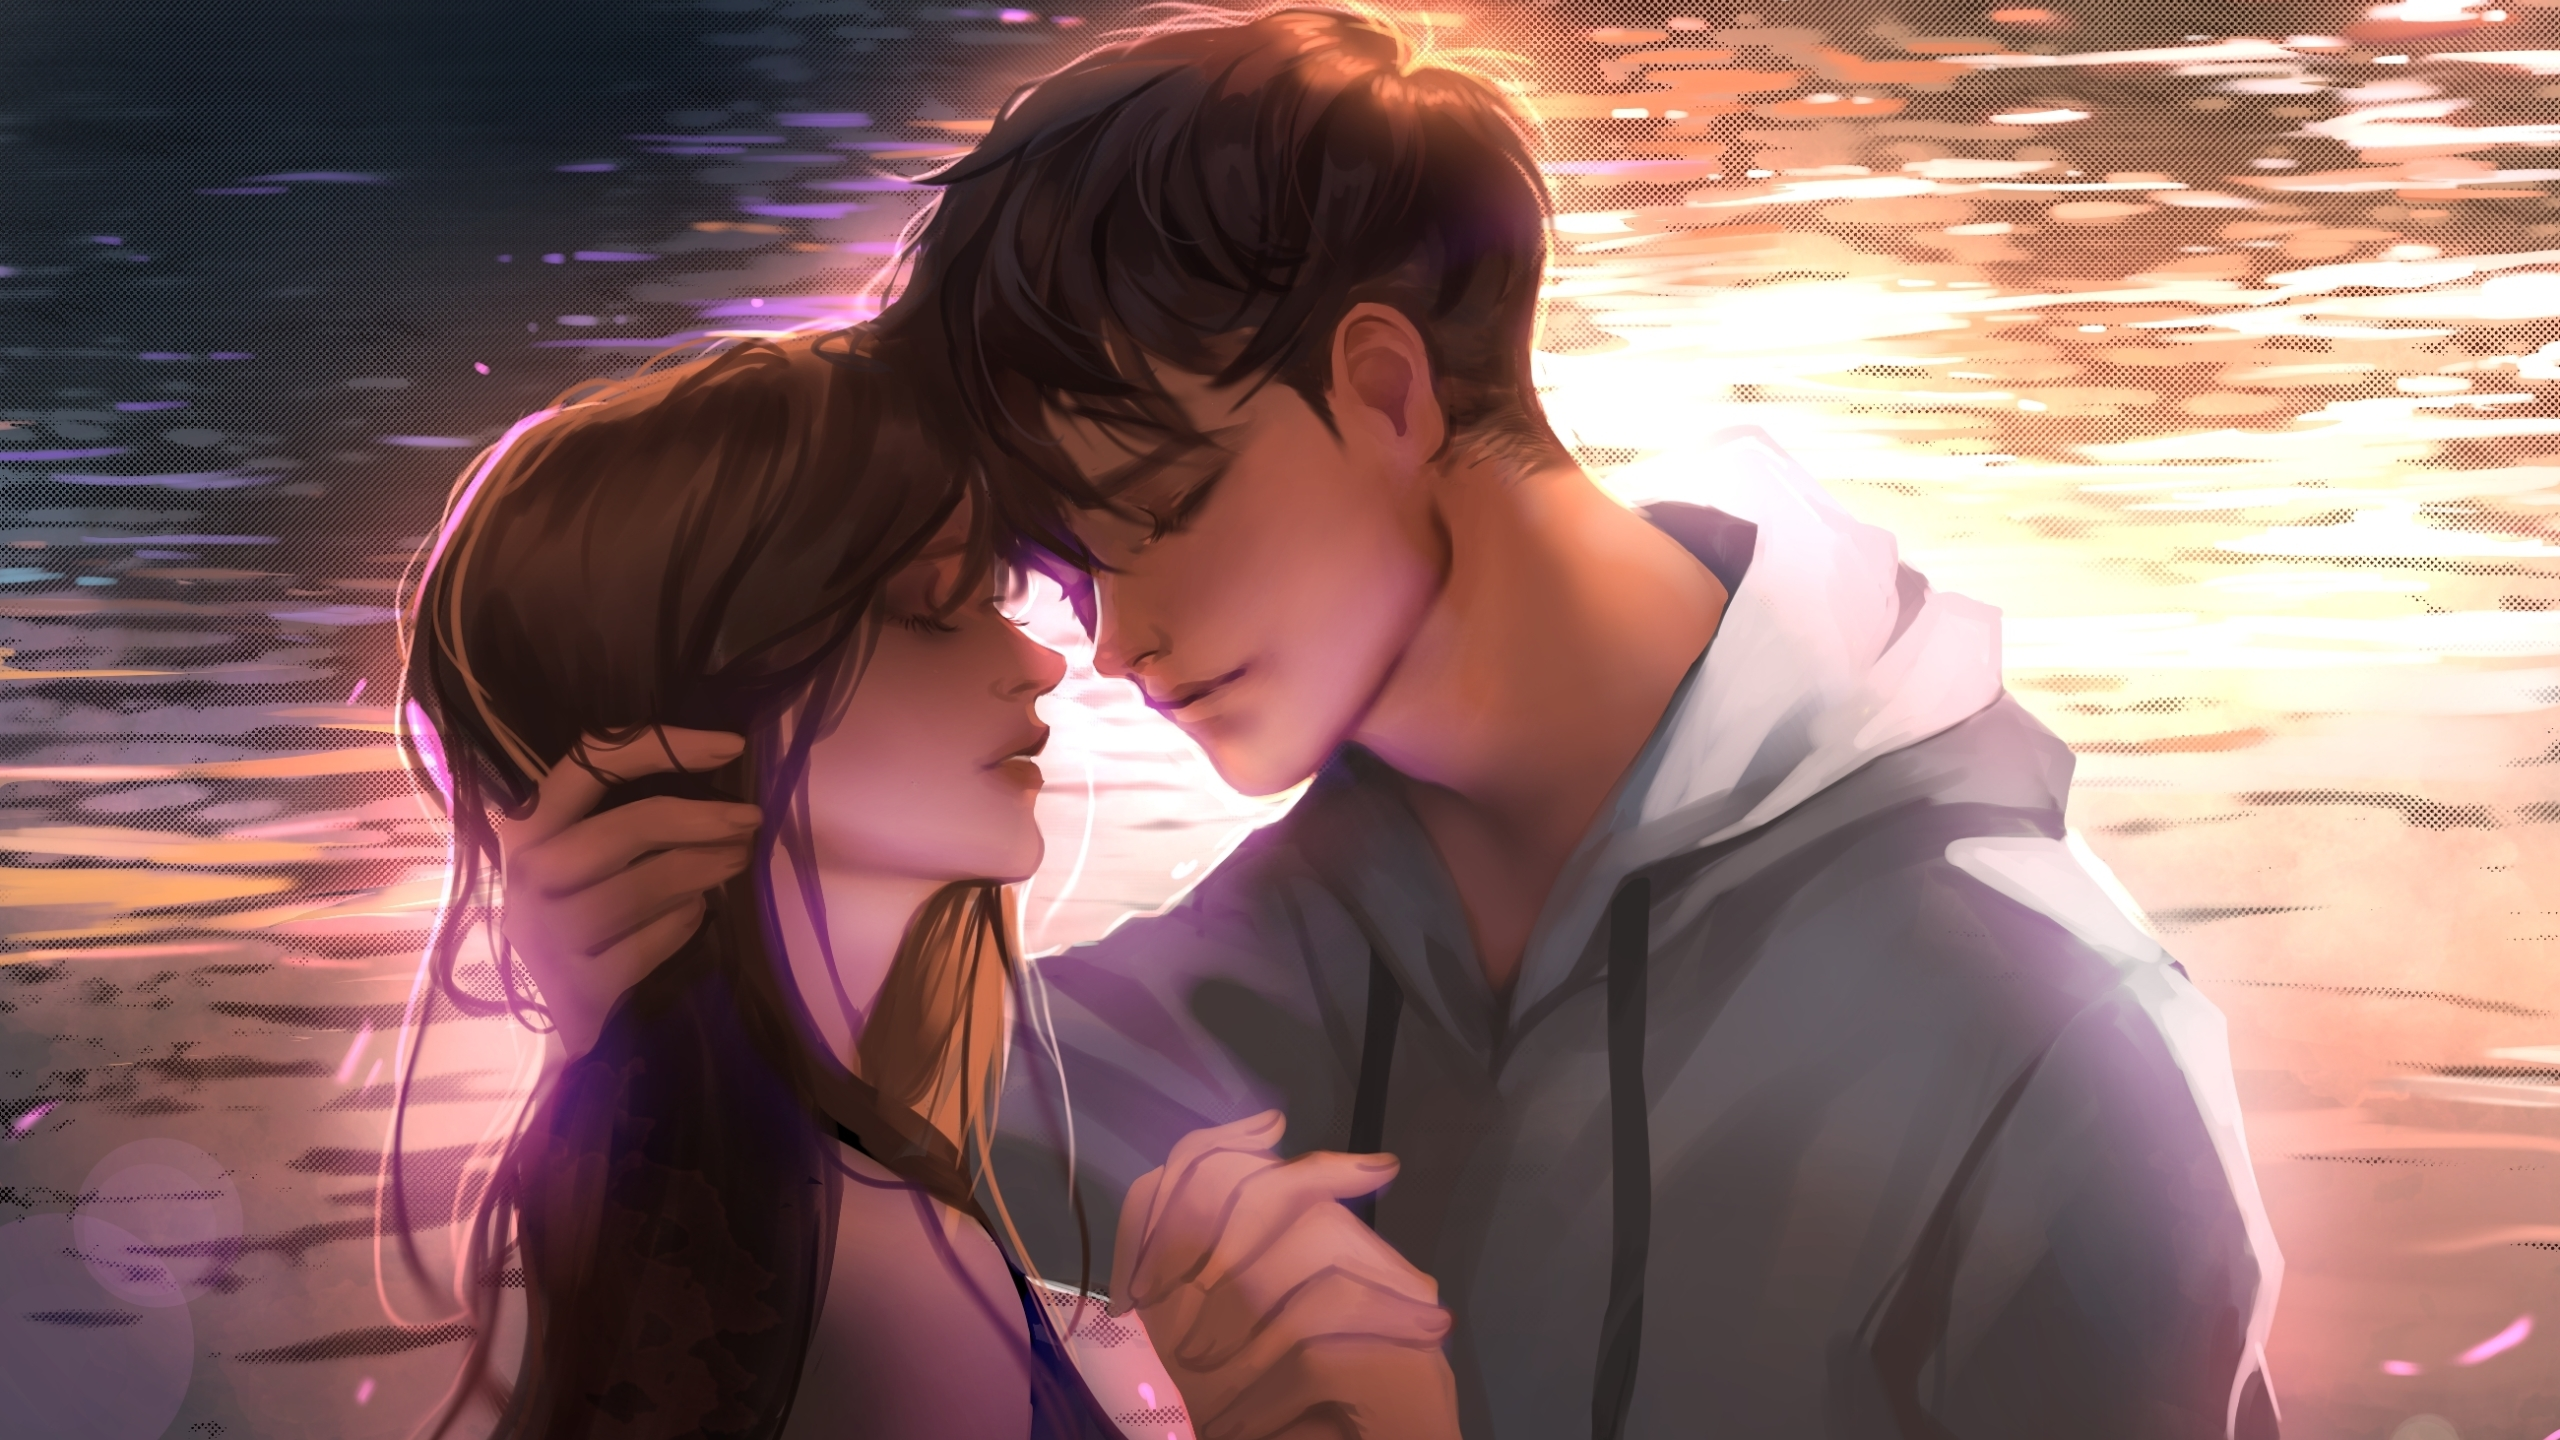 13 Romantic Anime Couples Wallpapers Anime Top Wallpaper